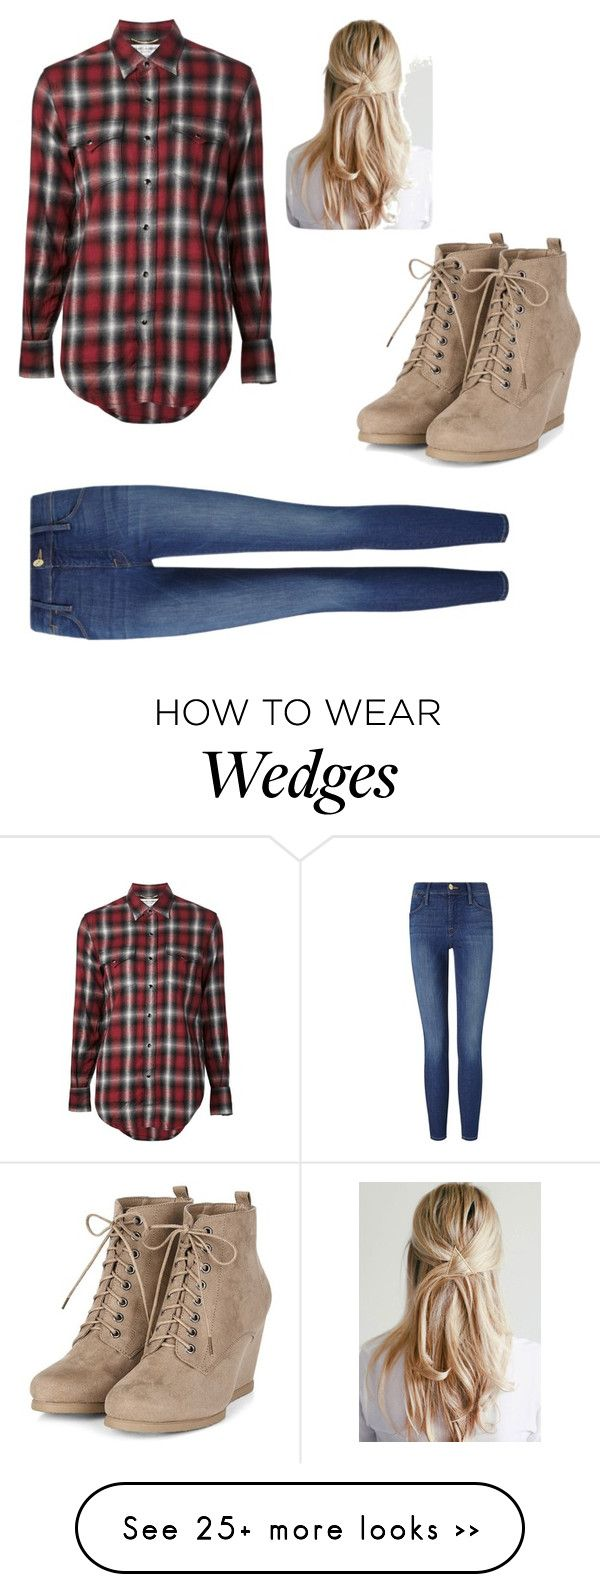 """""""Pretty lumberjack"""" by gorgeousflowers on Polyvore featuring Yves Saint Laurent and Frame Denim"""